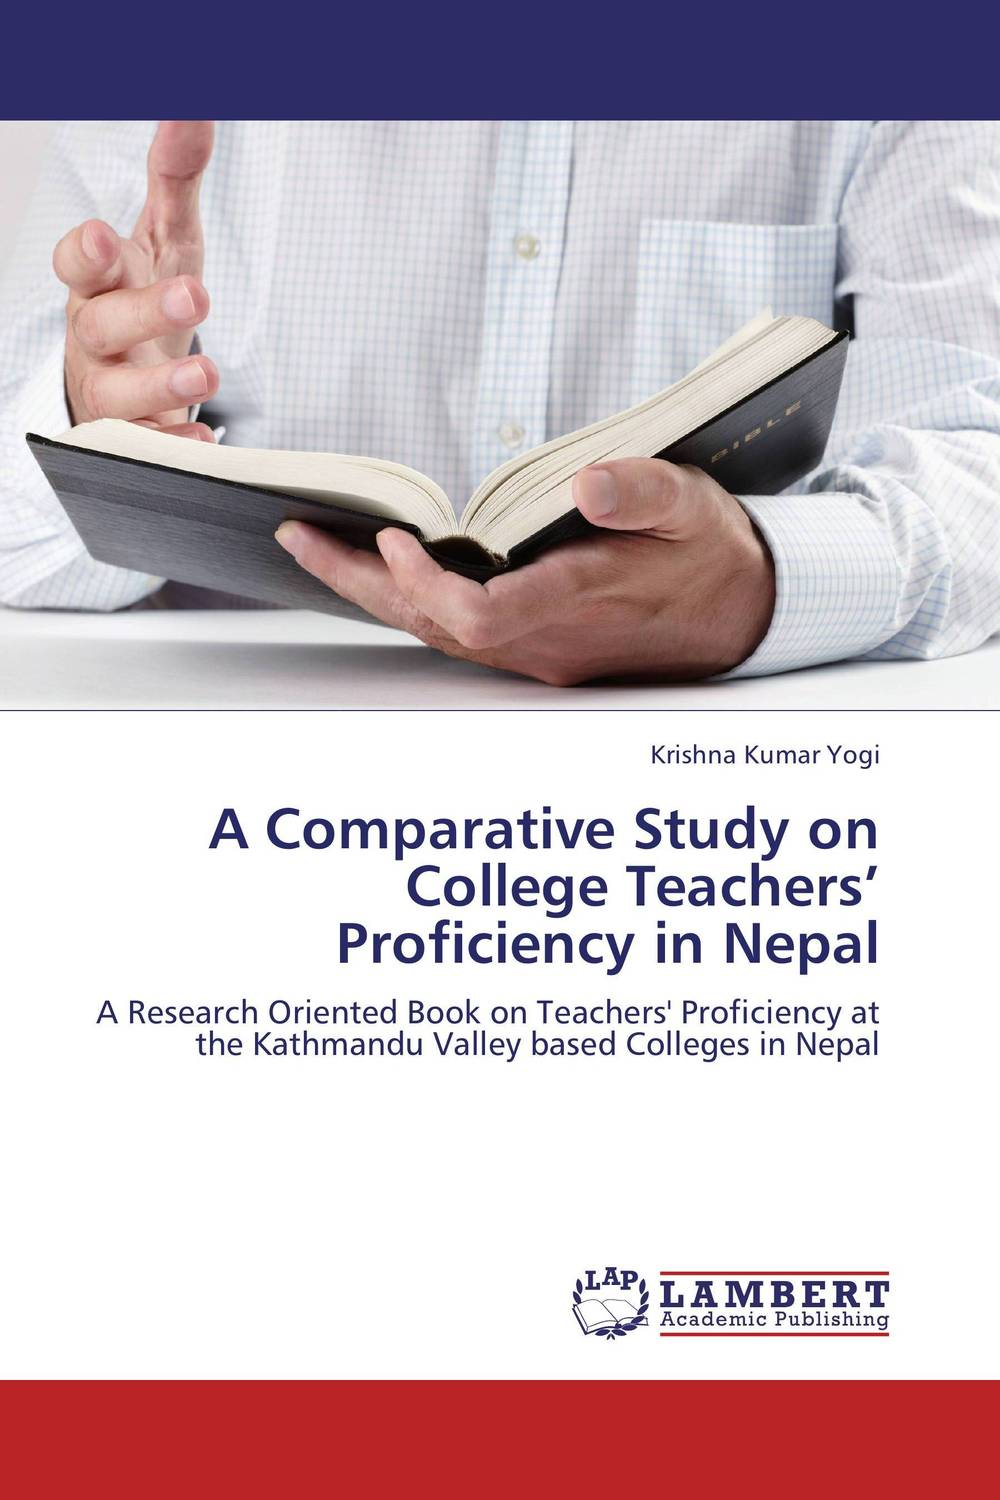 A Comparative Study on College Teachers' Proficiency in Nepal rakesh bhatia surinder bir singh and harpreet kaur organizational development comparative study of engineering colleges